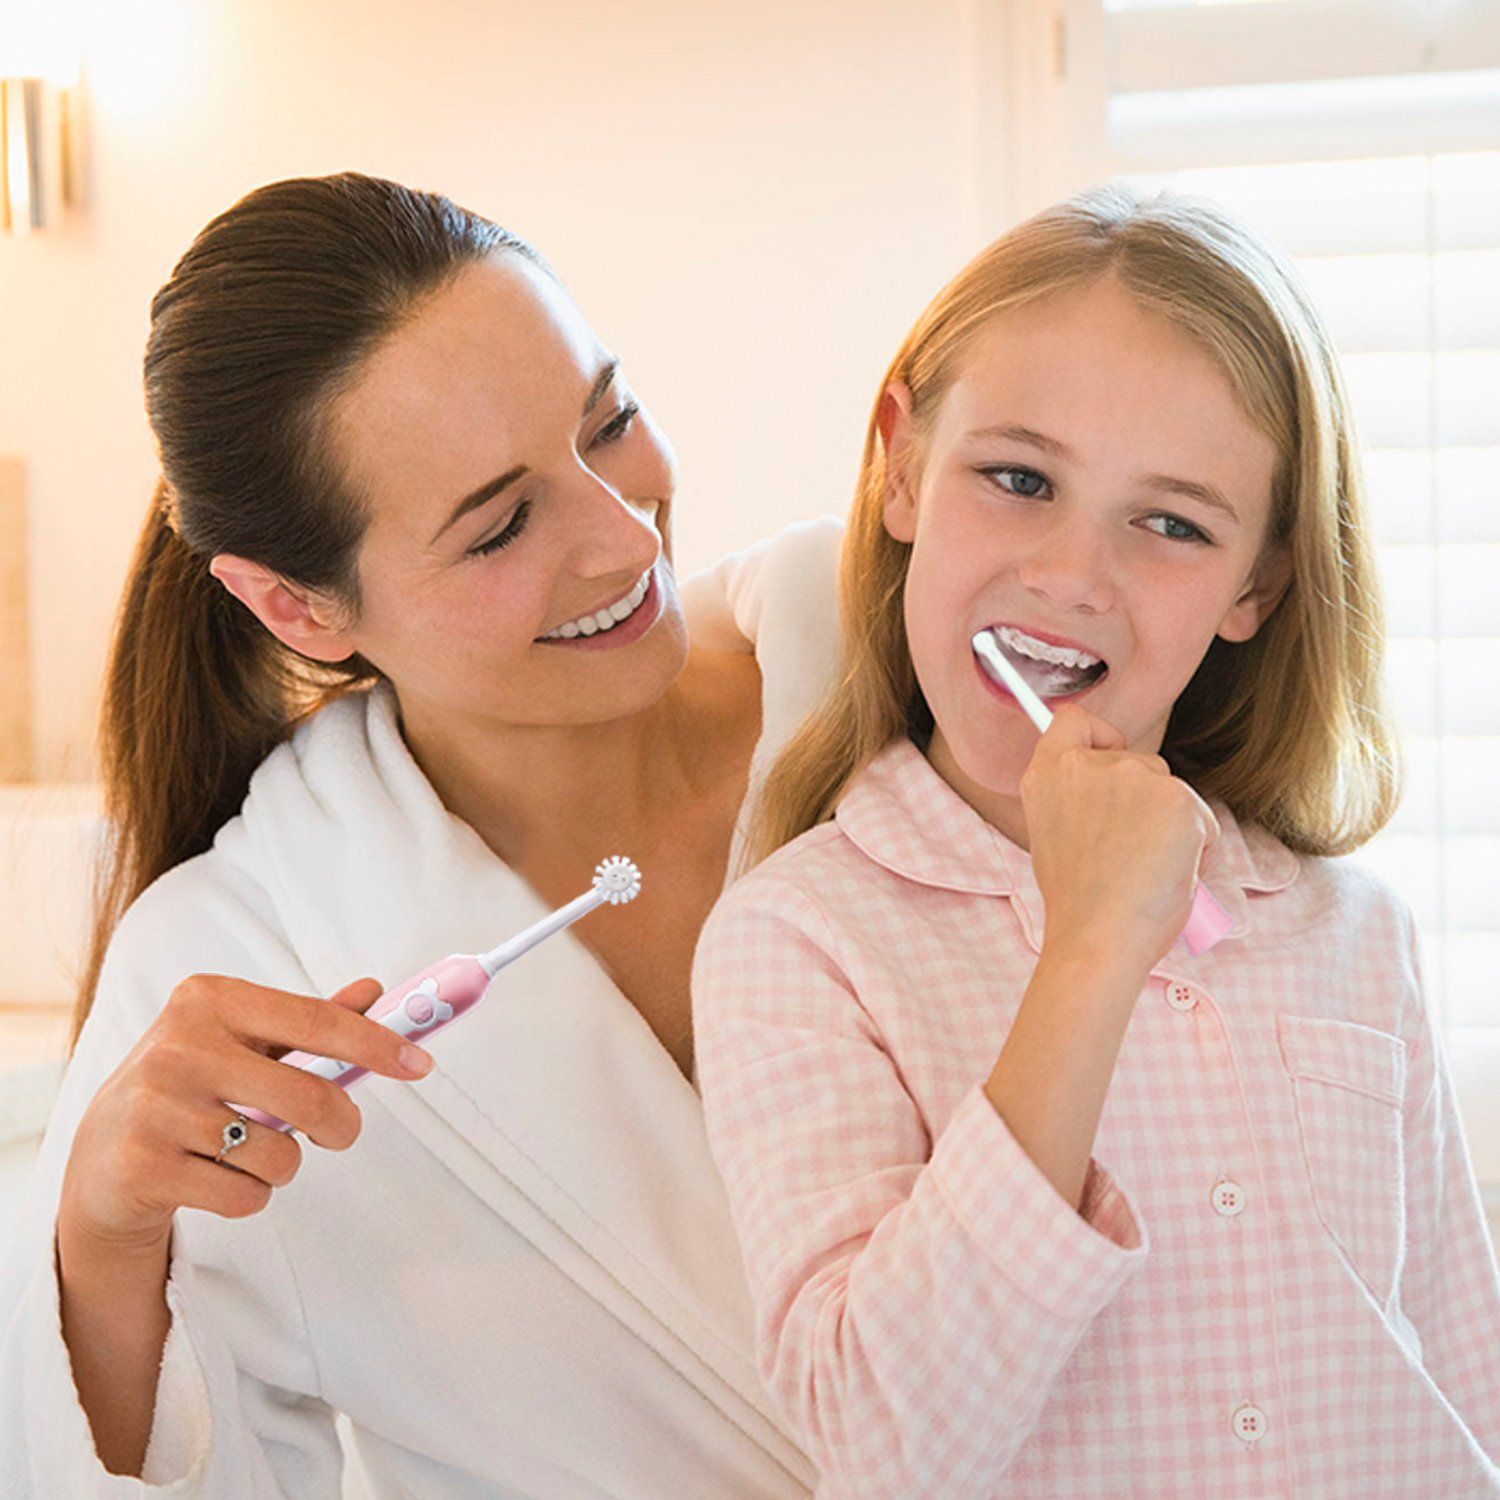 Electric toothbrush kids,NeWisdom 360° rotating 30s FAST brushing Rechargeable WIRELESS CHARGING Electric Toothbrush for Children,4 hours charging,30 days working (Wireless Charge Pink 9-14) by NeWisdom (Image #5)